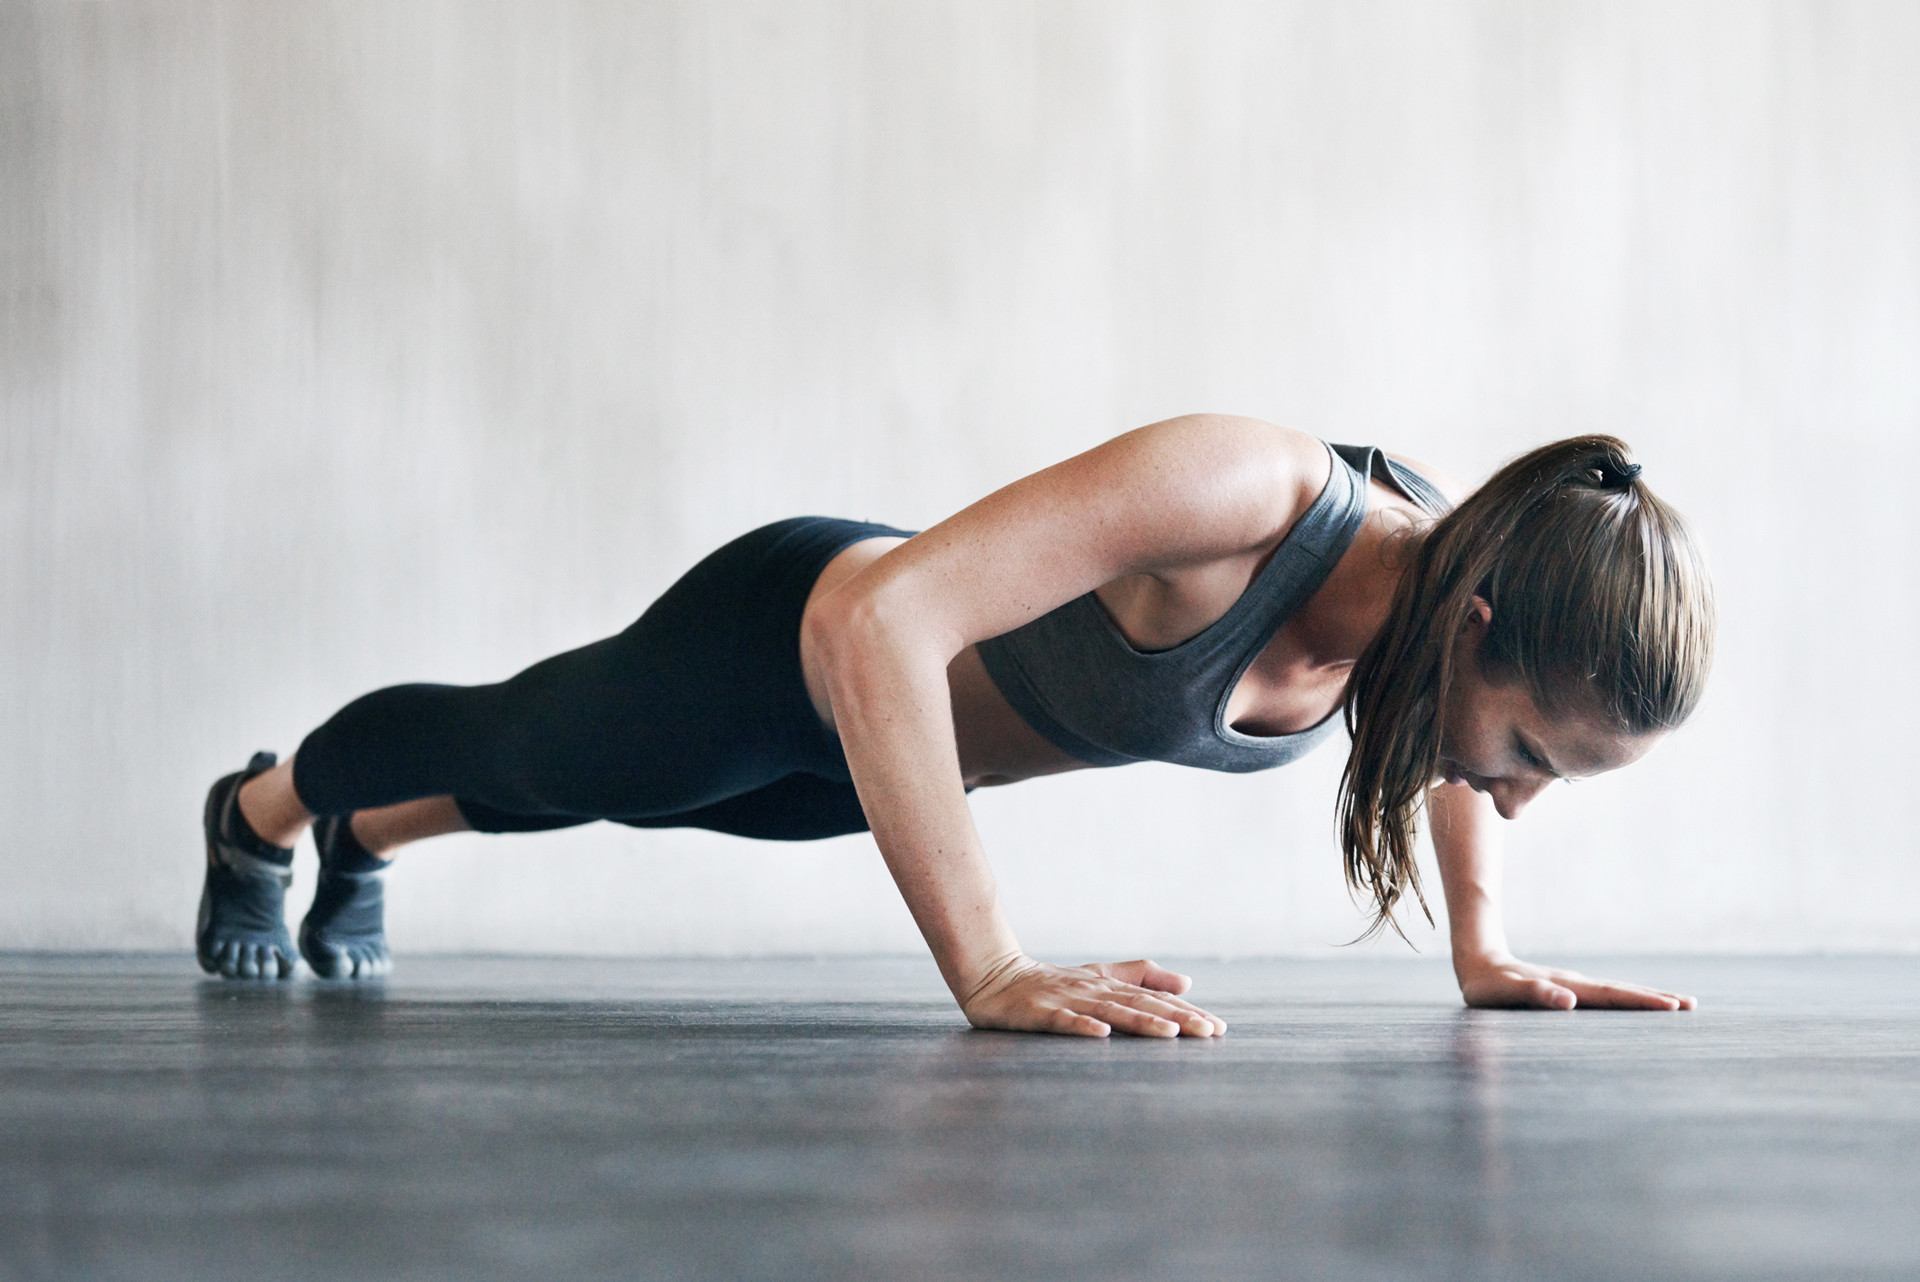 Virtual or 1 on 1 personal training